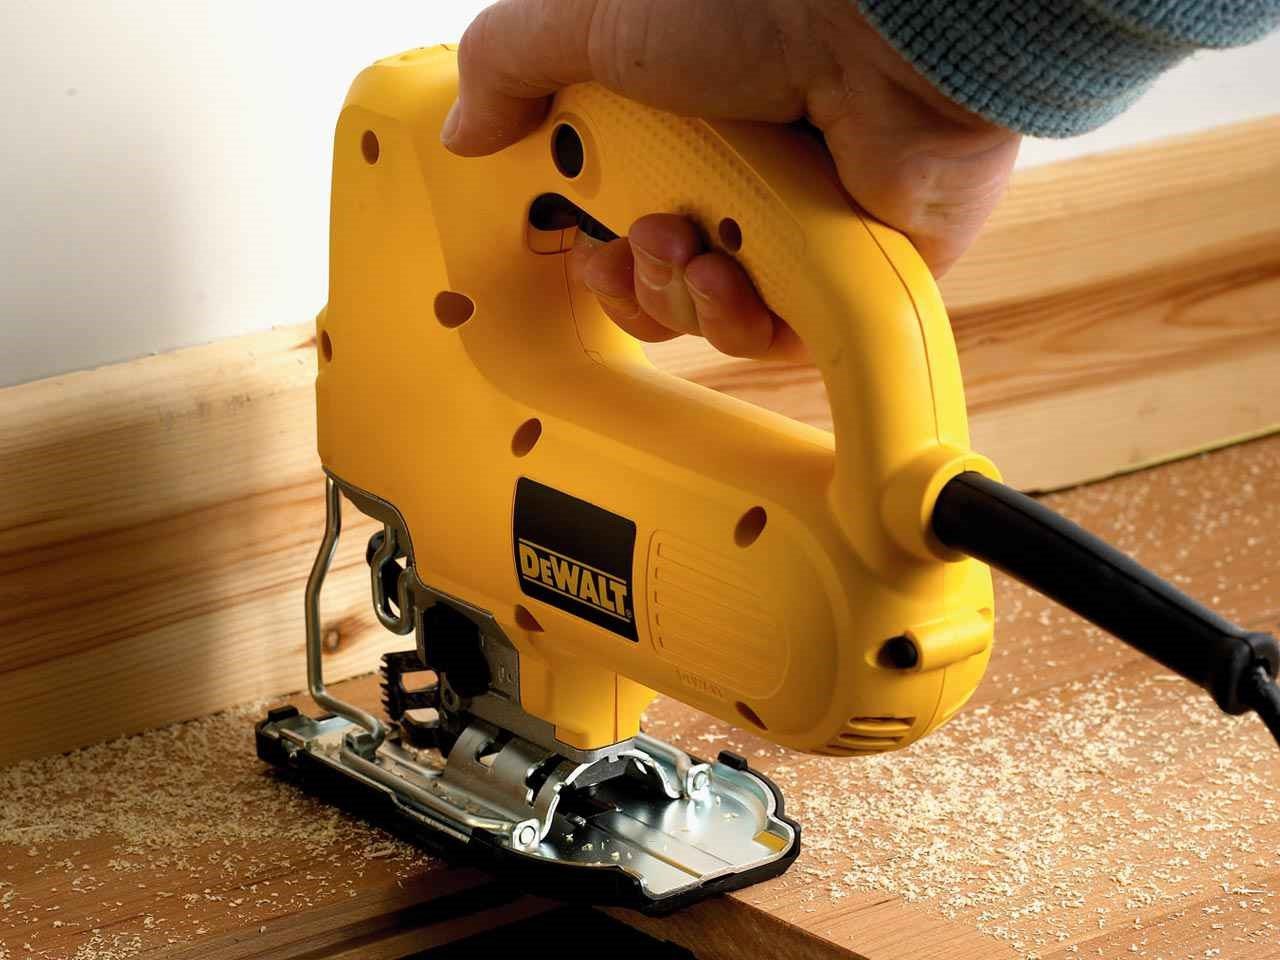 Dewalt dw341k 240v compact top handle jigsaw 550w dewalt authorised reseller greentooth Images